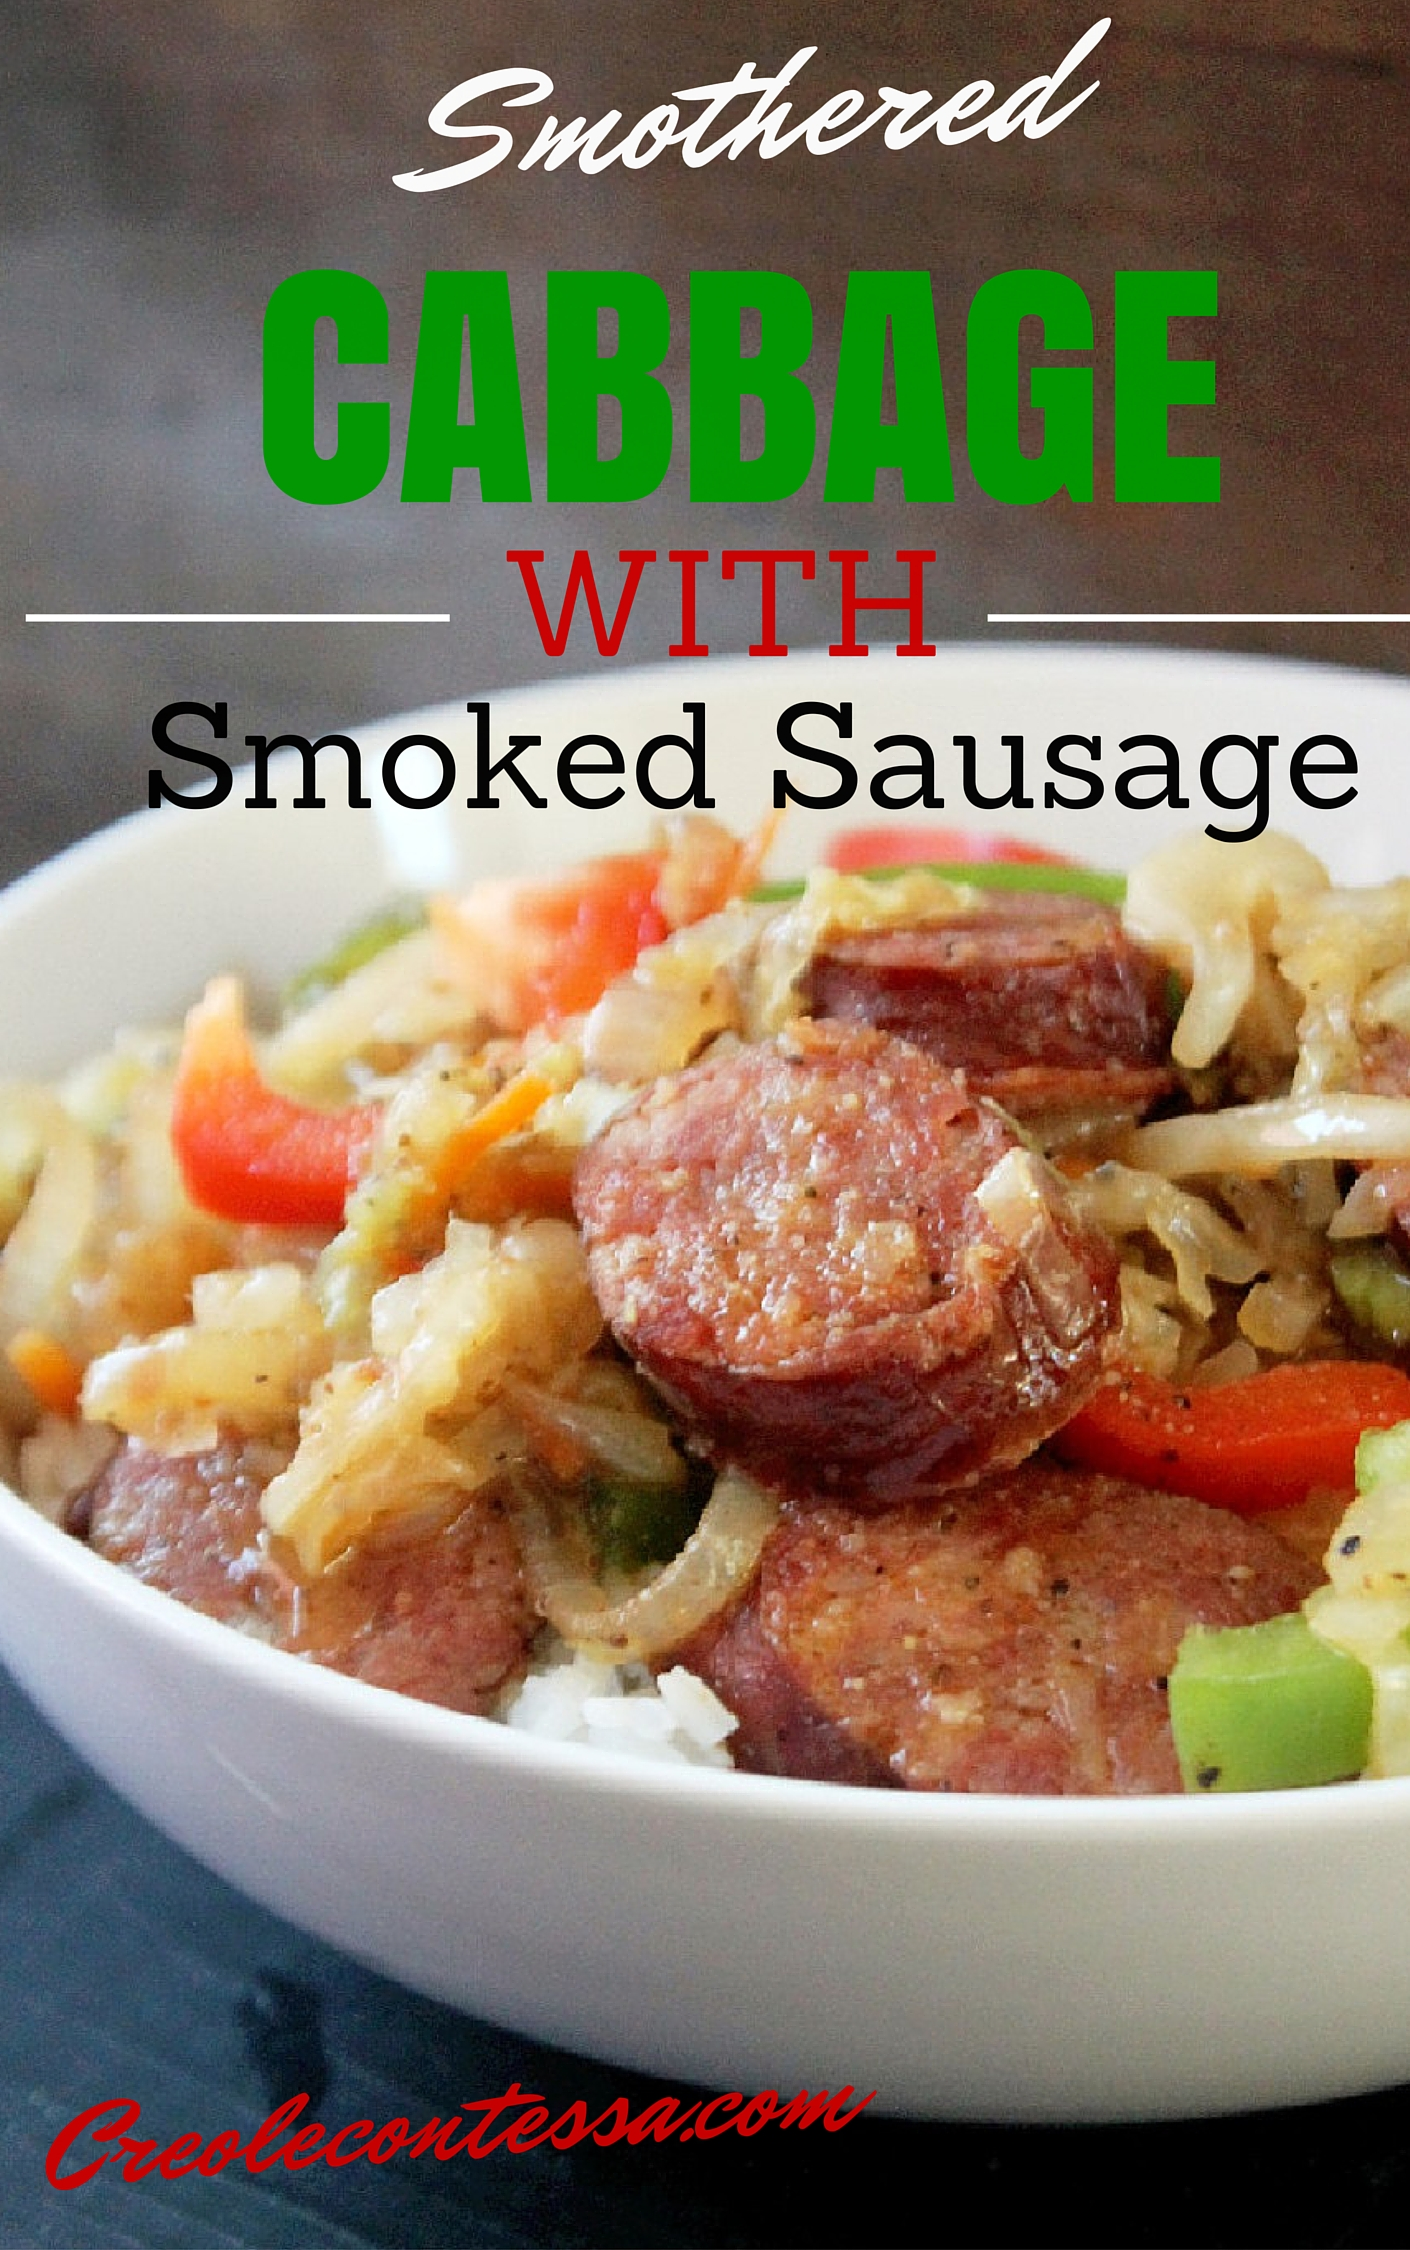 Smothered Cabbage with Smoked Sausage & Peppers-Creole Contessa